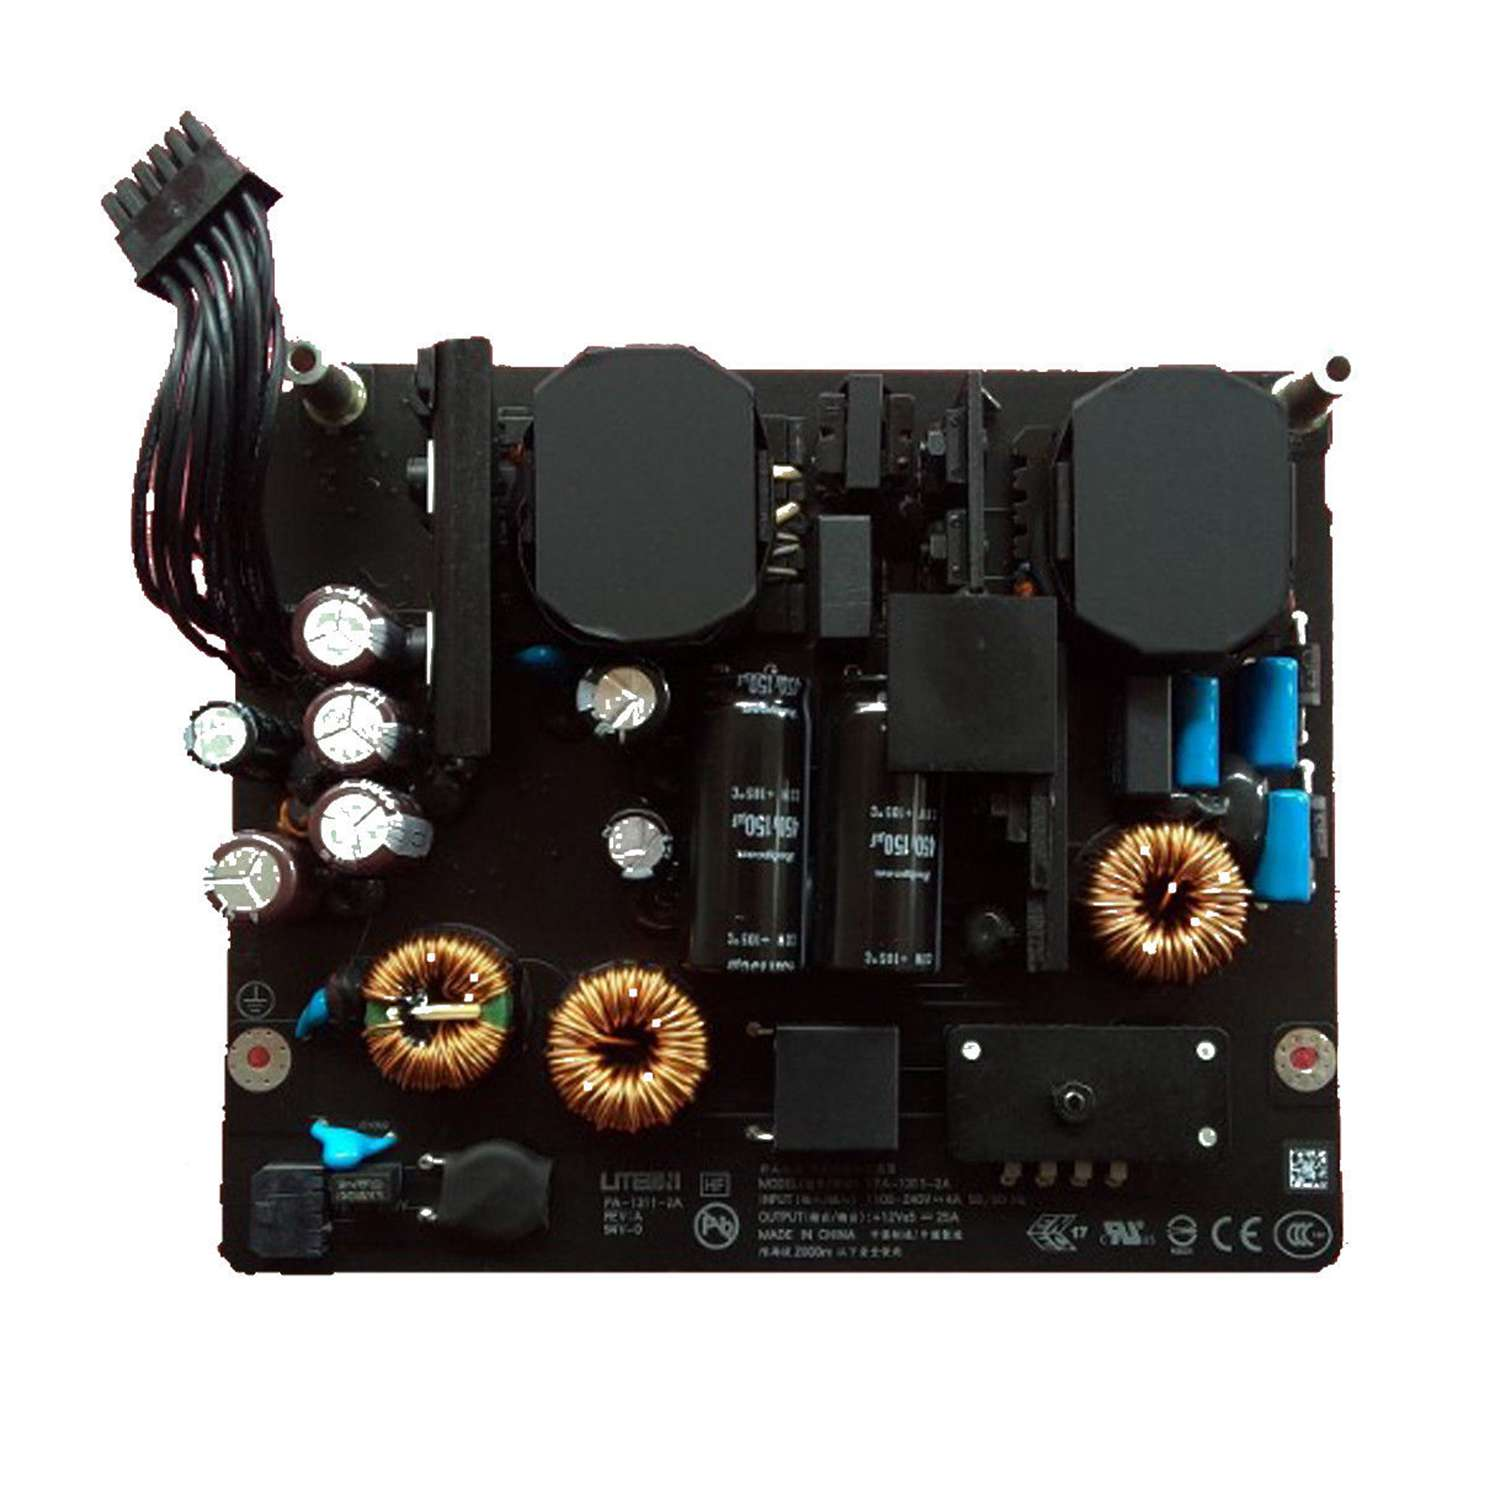 Oem <font><b>Power</b></font> Board For Apple <font><b>Imac</b></font> 27 inch <font><b>A1419</b></font> <font><b>Power</b></font> <font><b>Supply</b></font> Late 2012 To 2014 Pa-1311-2A1 Adp-300A image